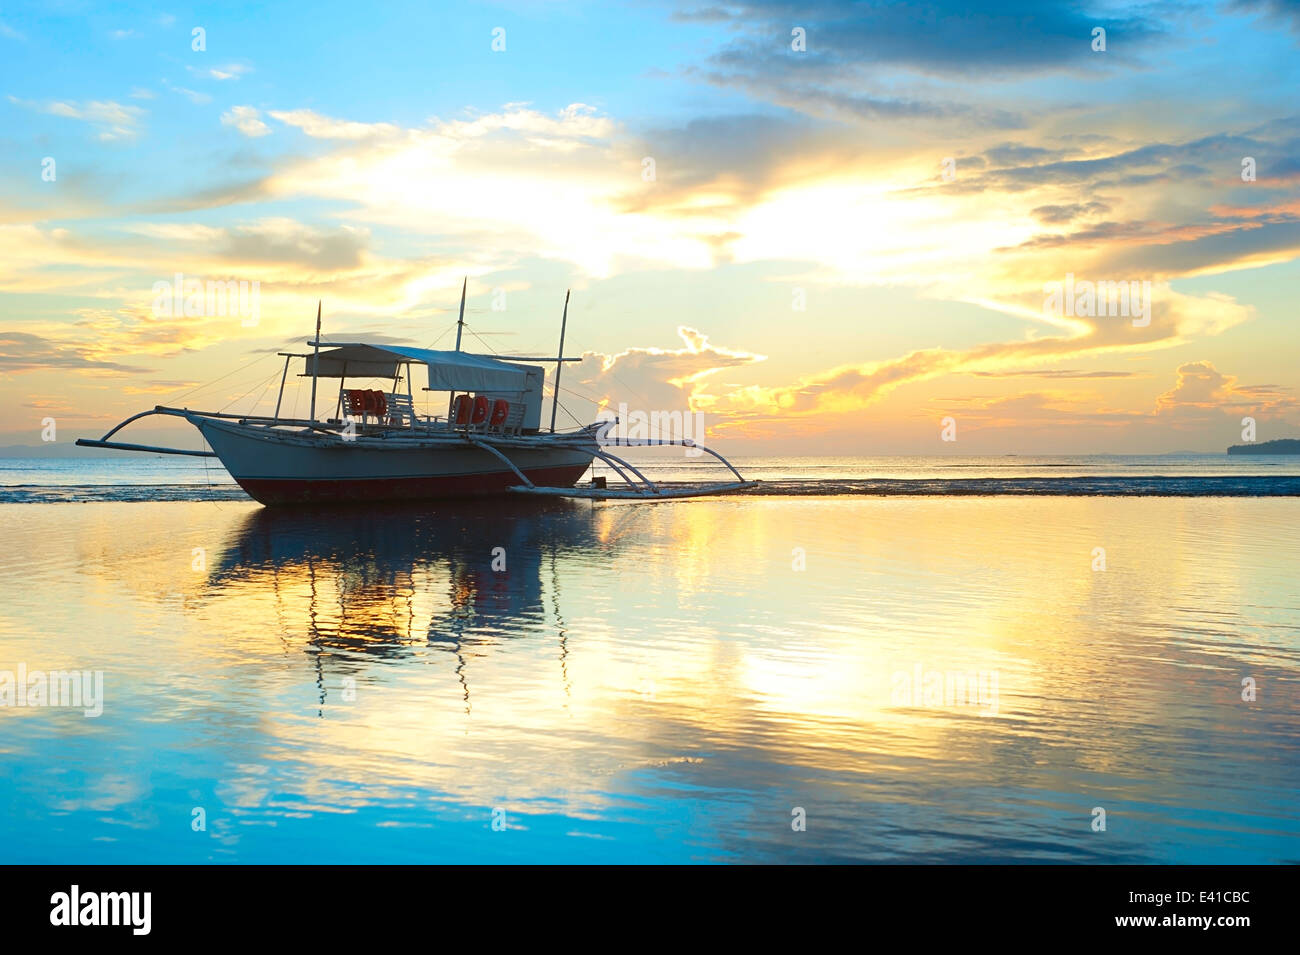 Tropical landscape with traditional Philippines boats at sunset - Stock Image